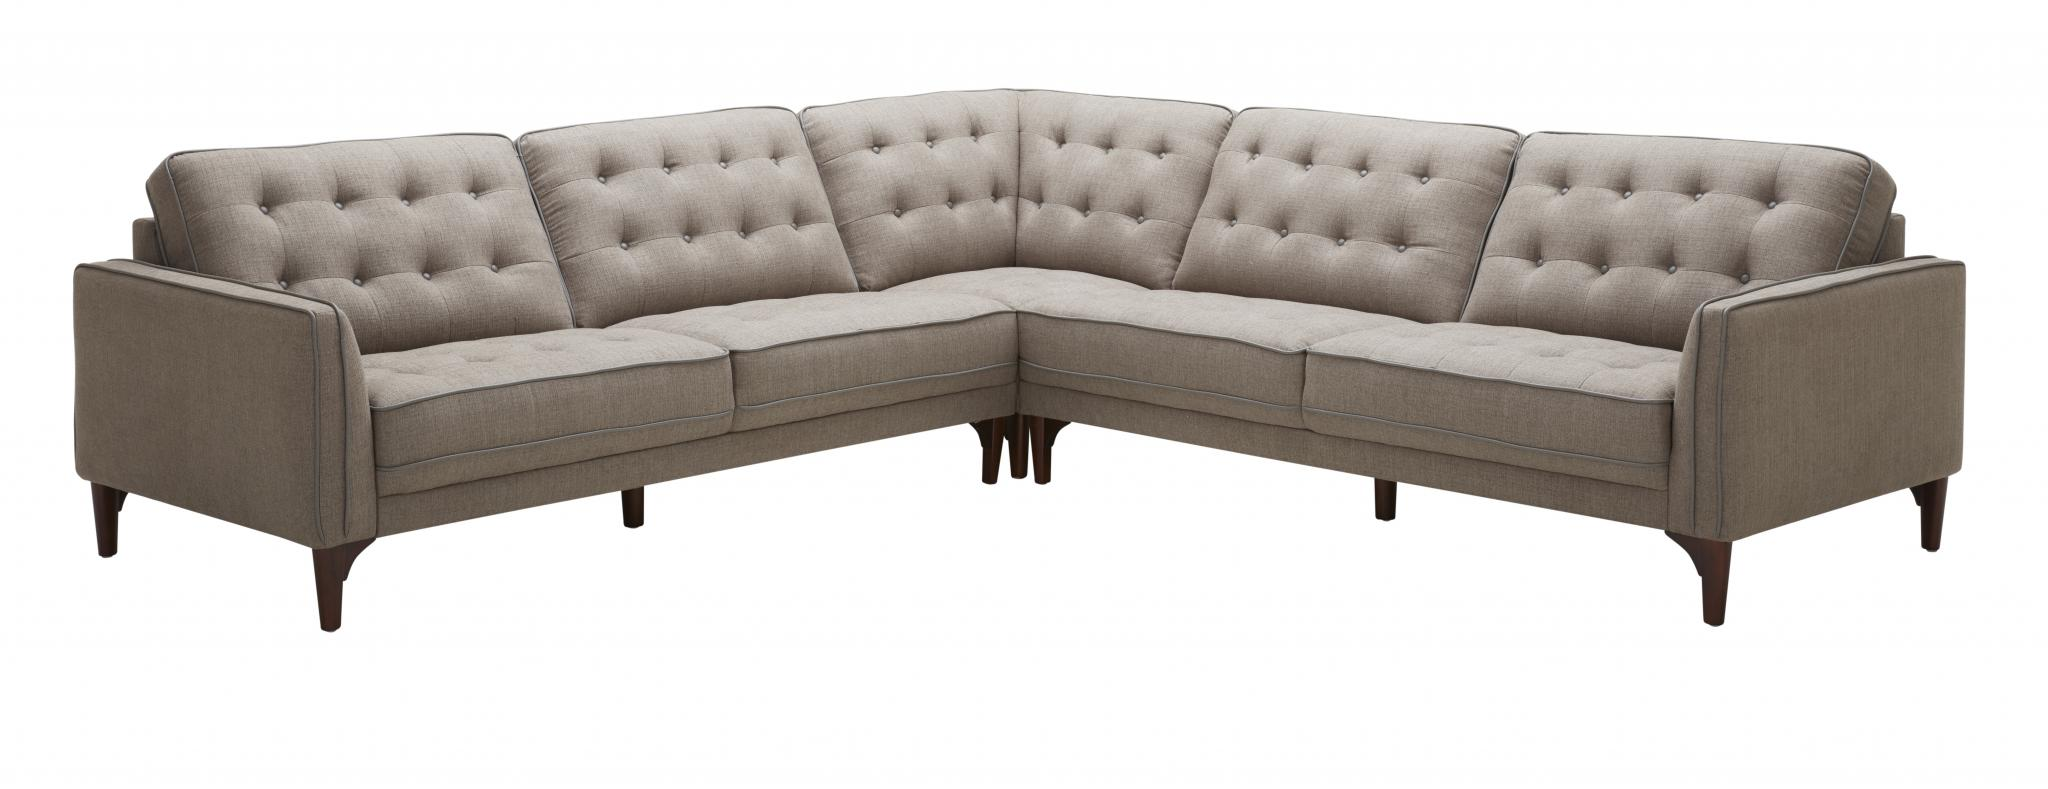 Gentil Sectionals, Joyce 3pc Sectional : Huffman Koos Furniture ...